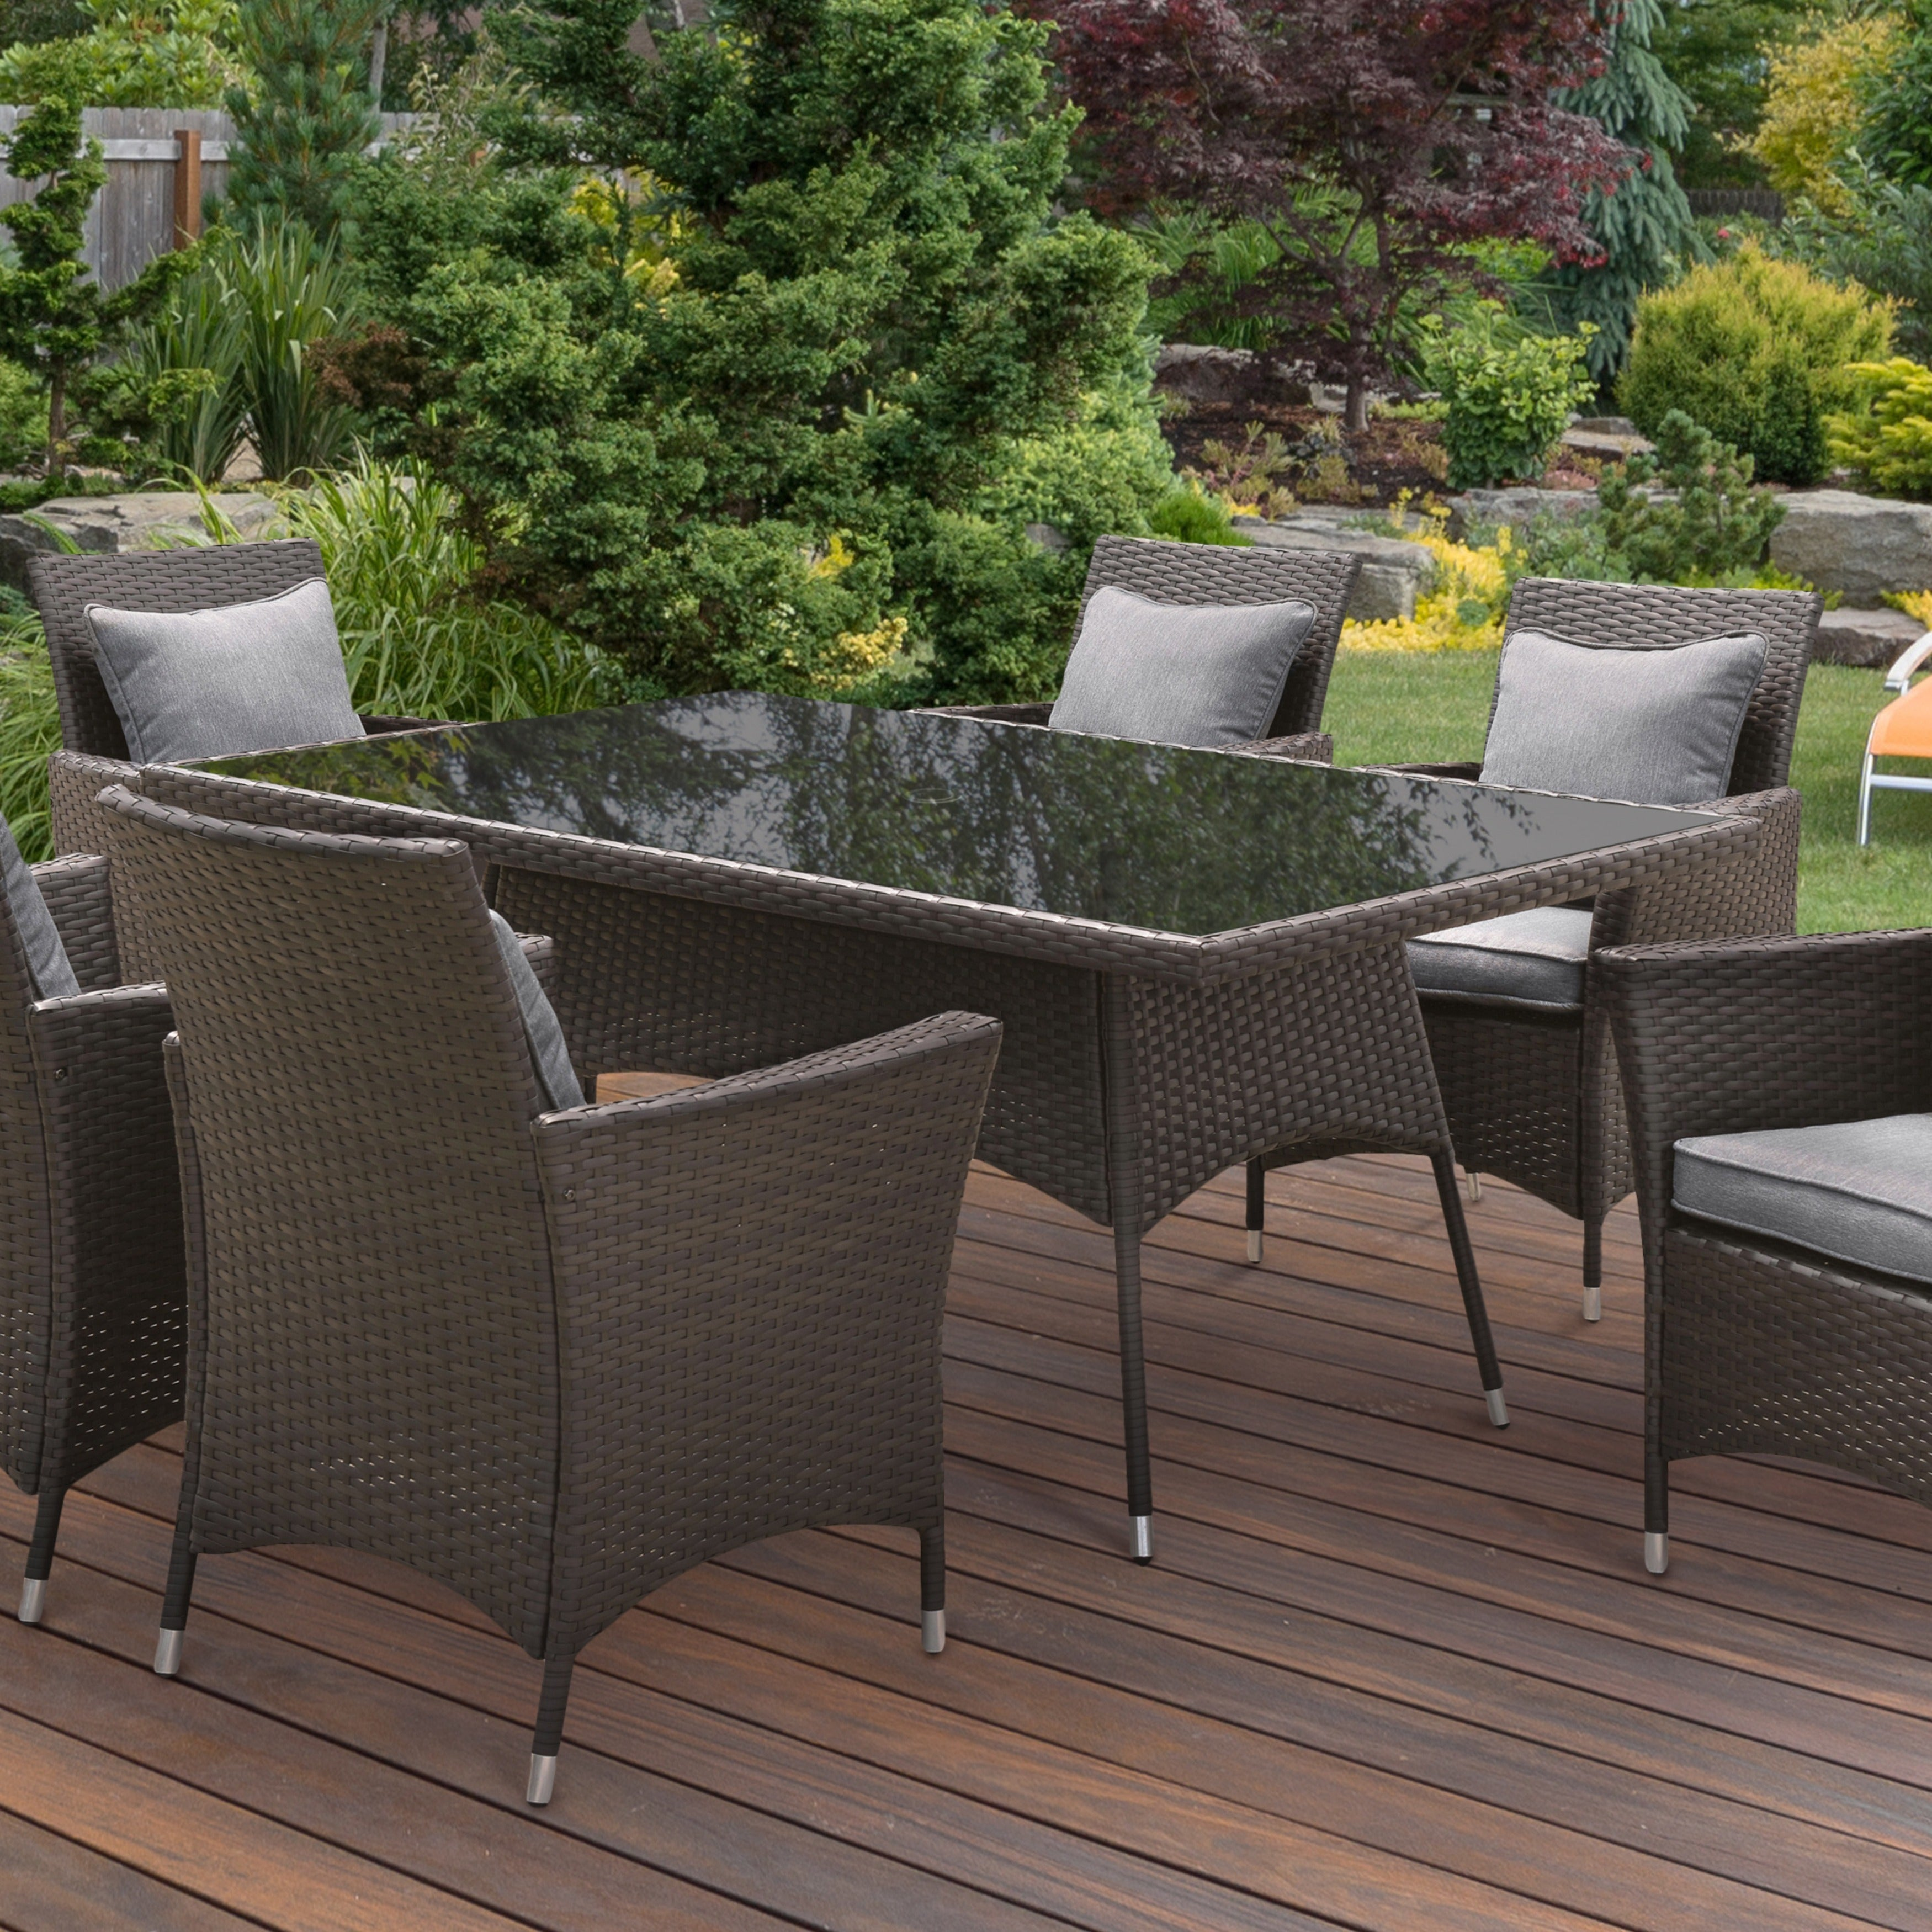 Furniture of america allyn espresso wicker inspired outdoor patio table